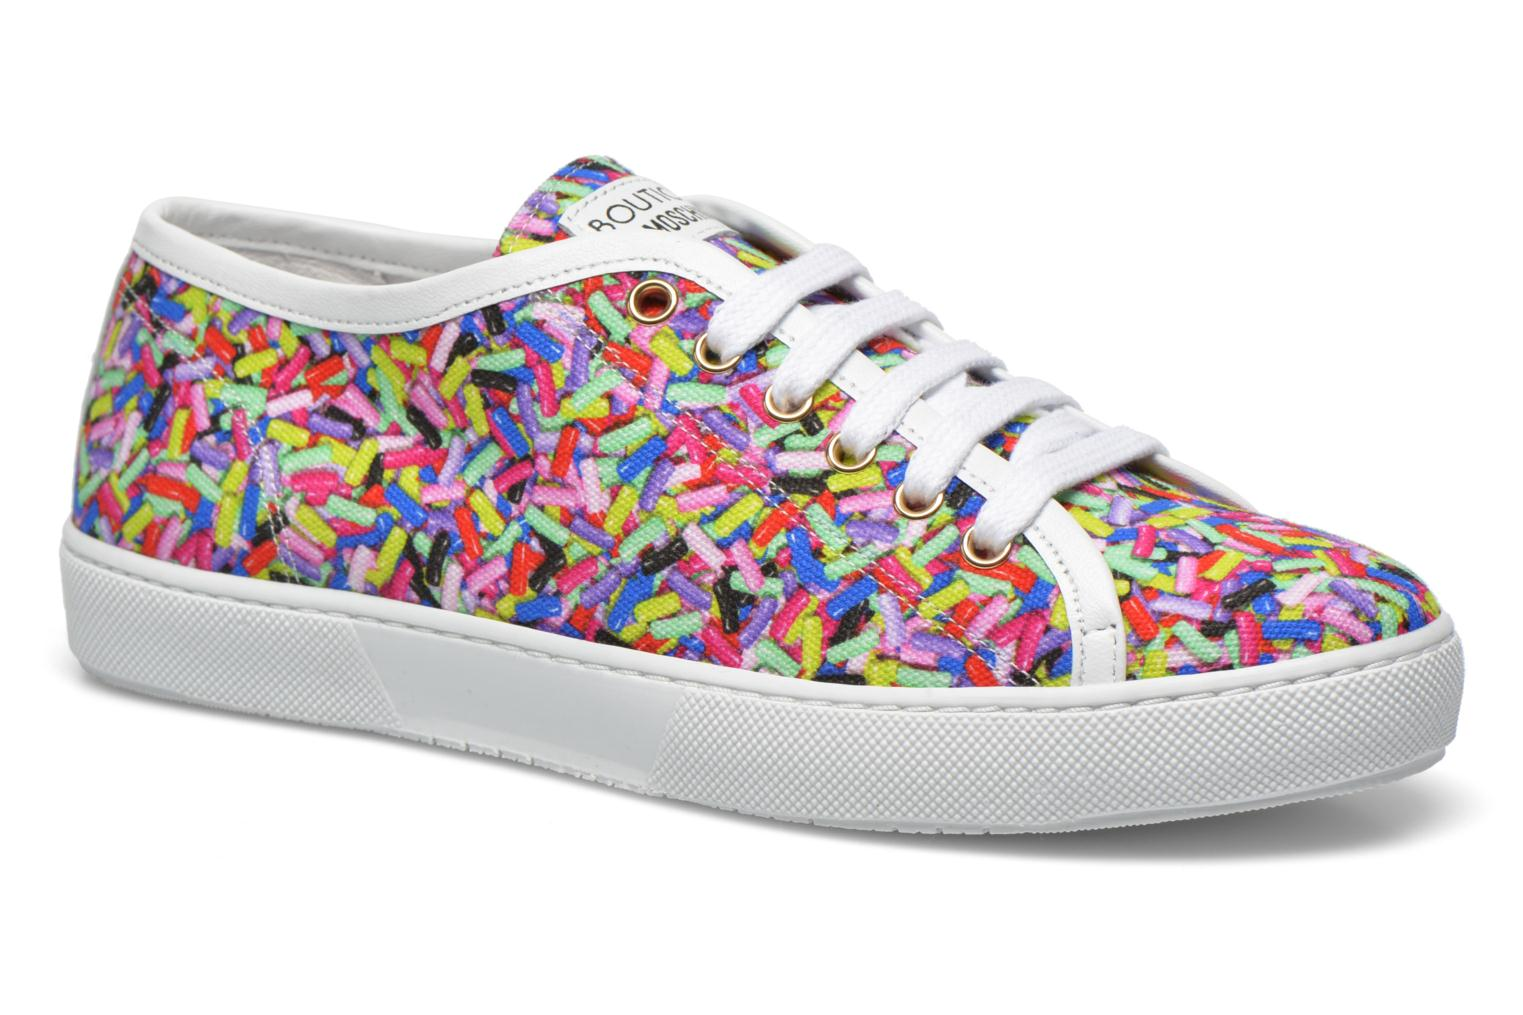 Boutique Moschino Sneaker Candy